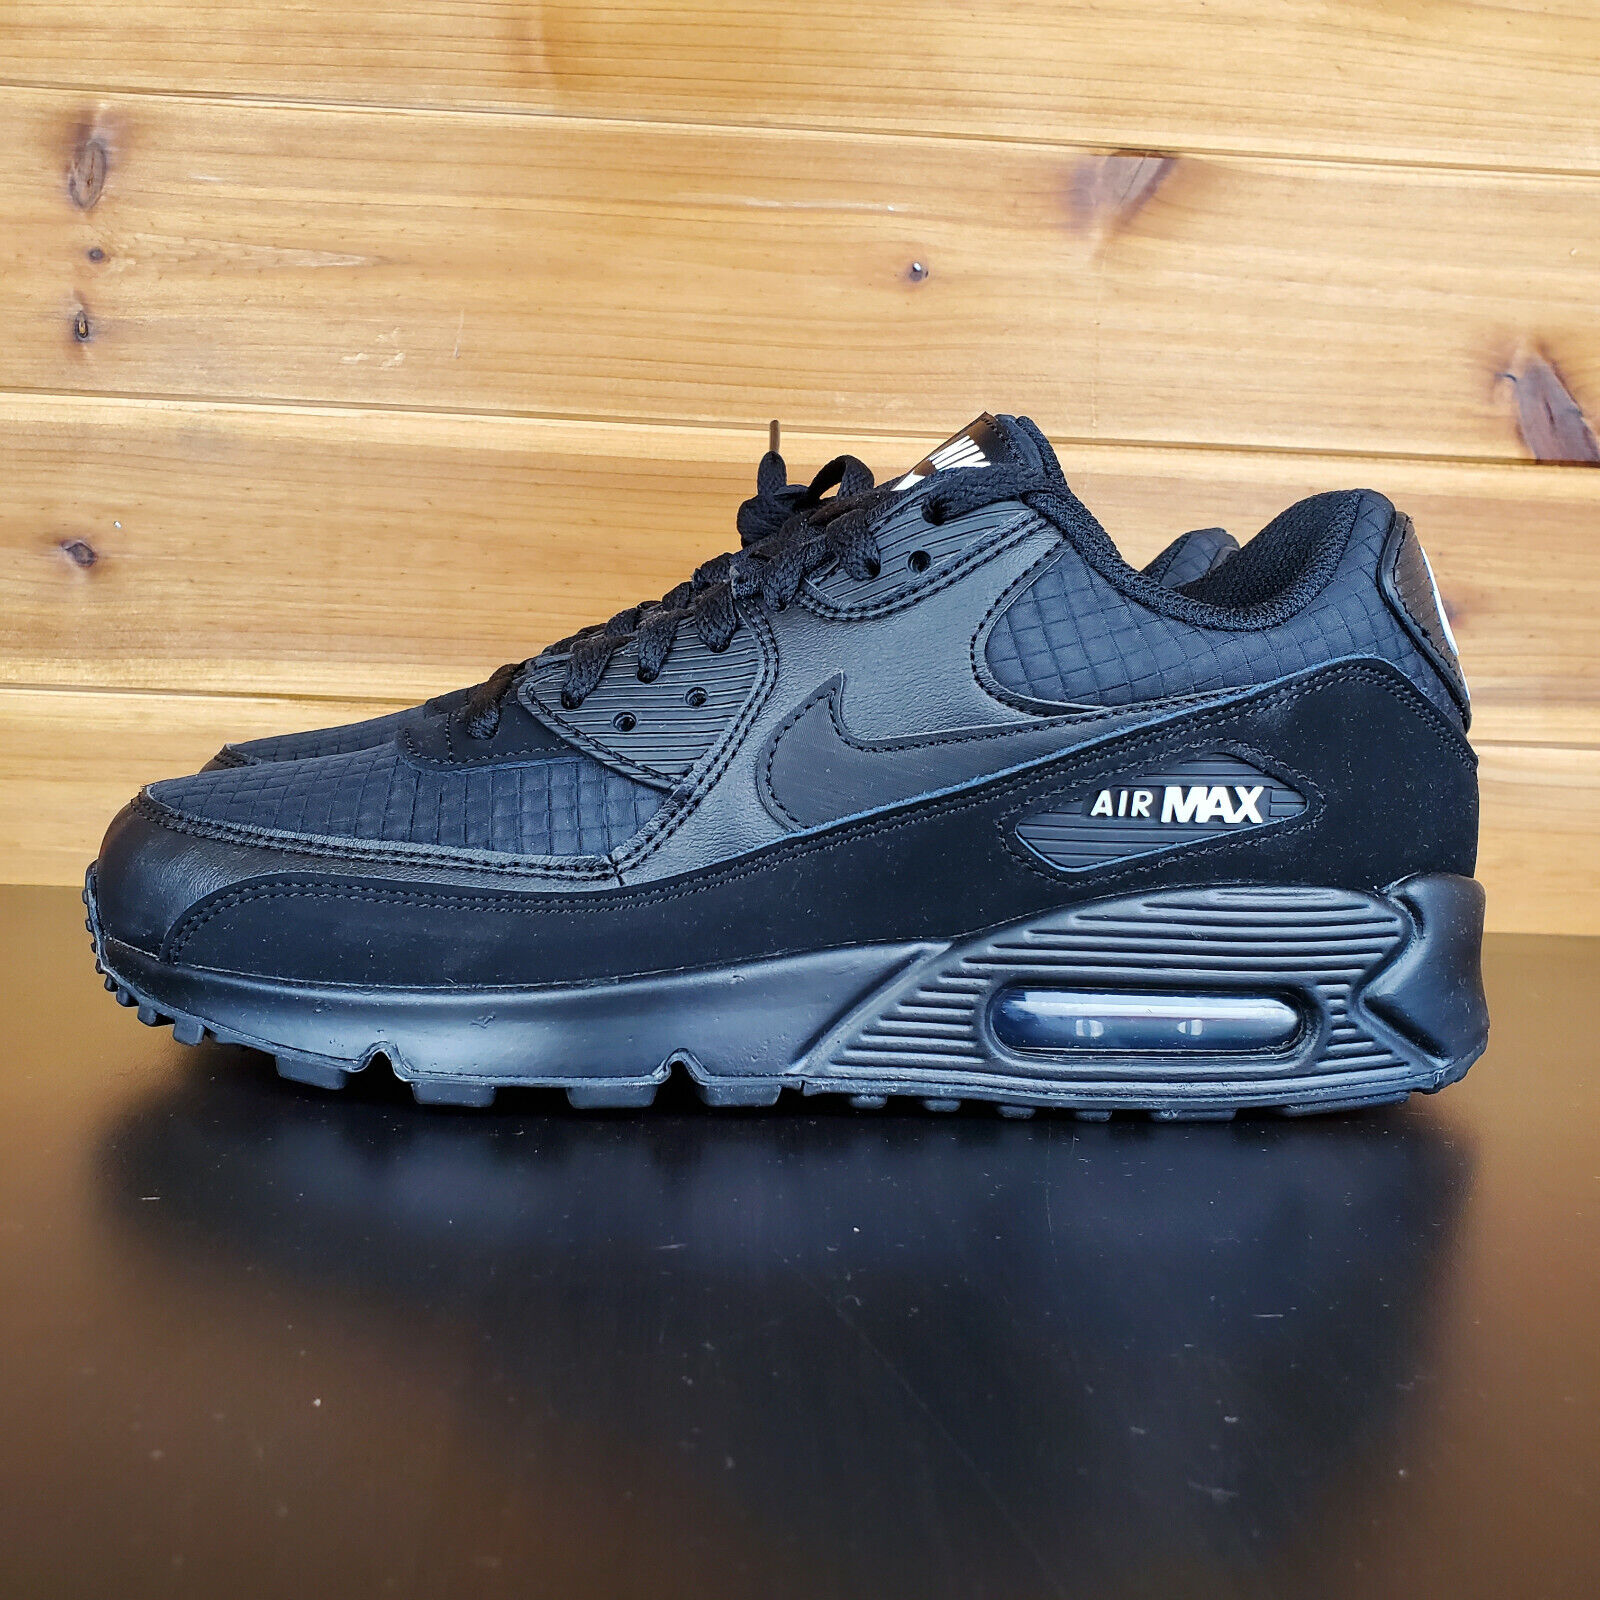 nike air max 95 frequency pack